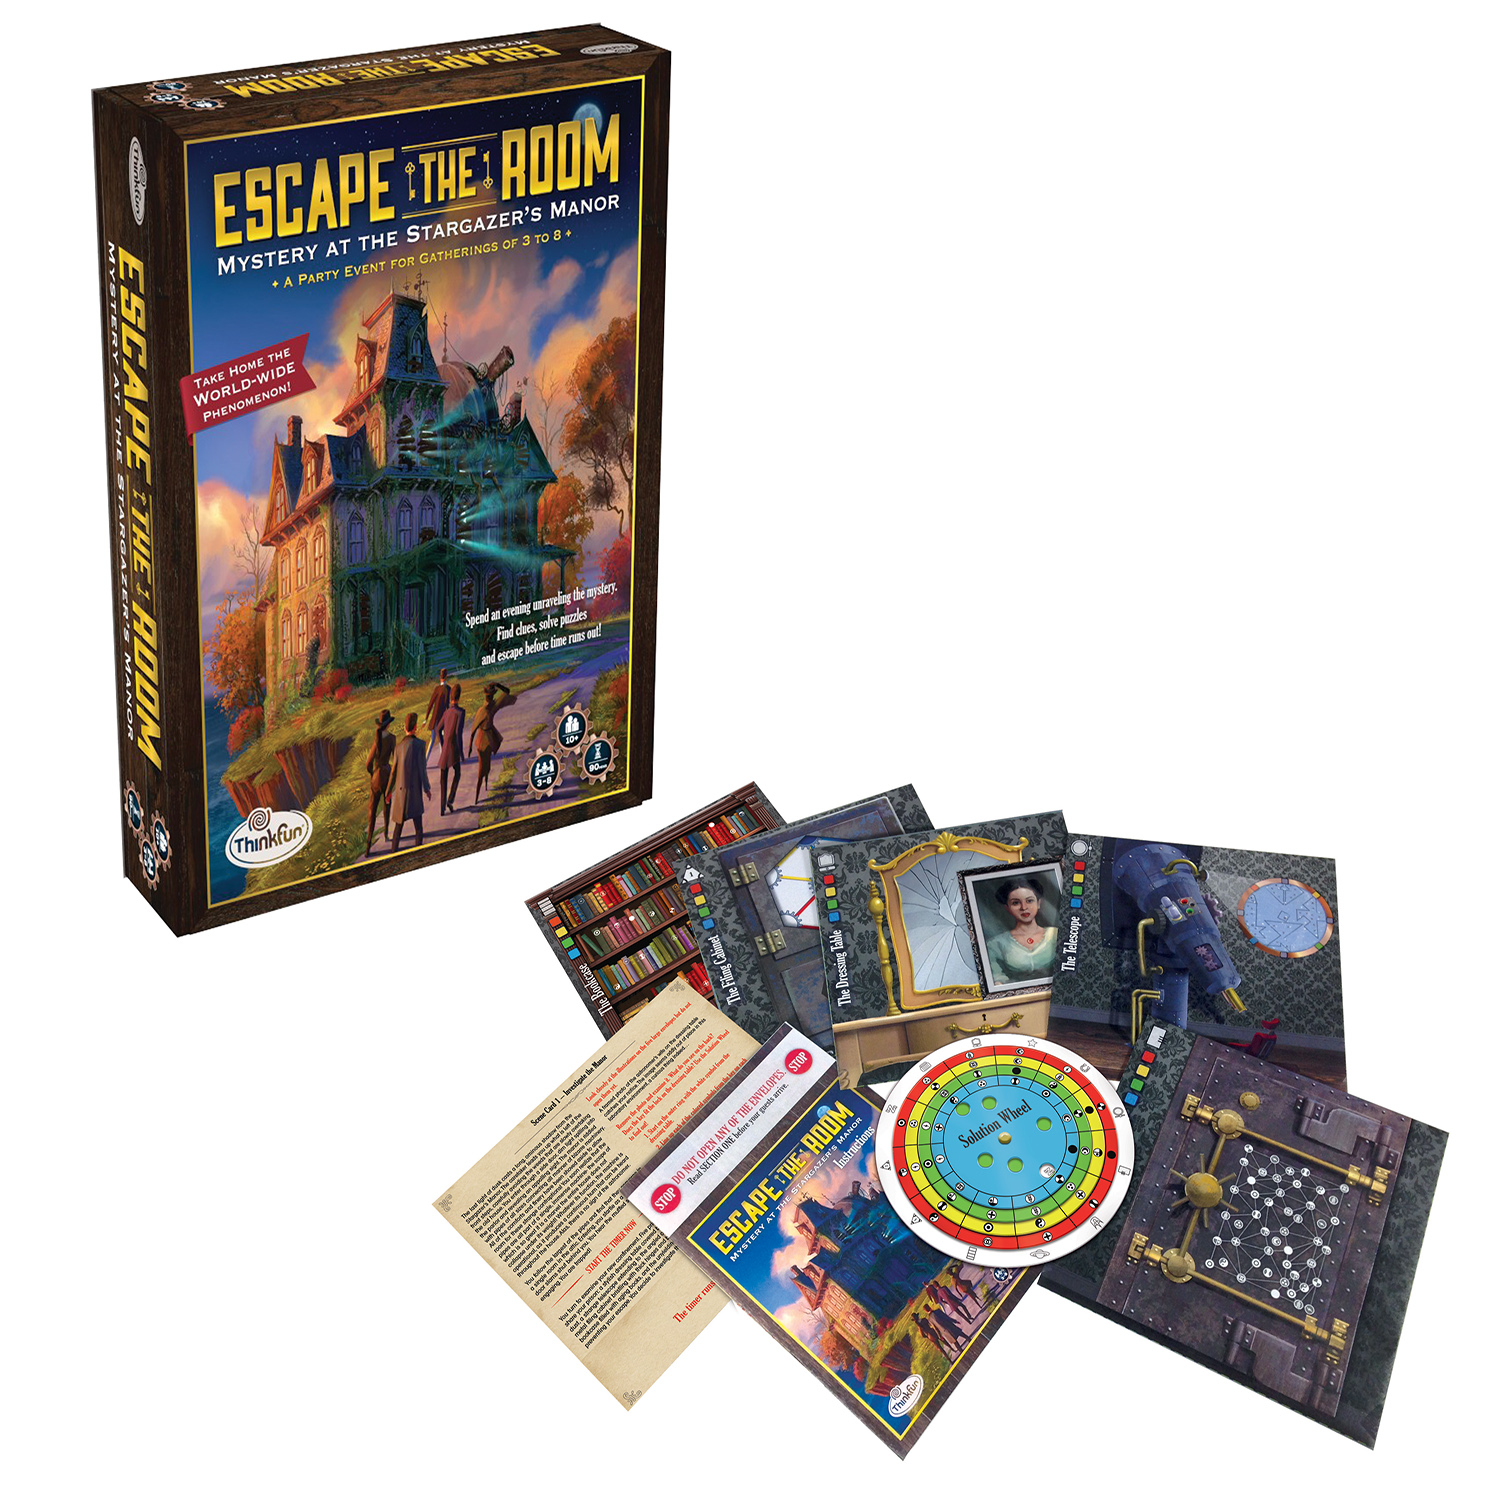 Juego De Mesa Escape Room Escape The Room Mystery At The Stargazer 39s Manor Thinkfun